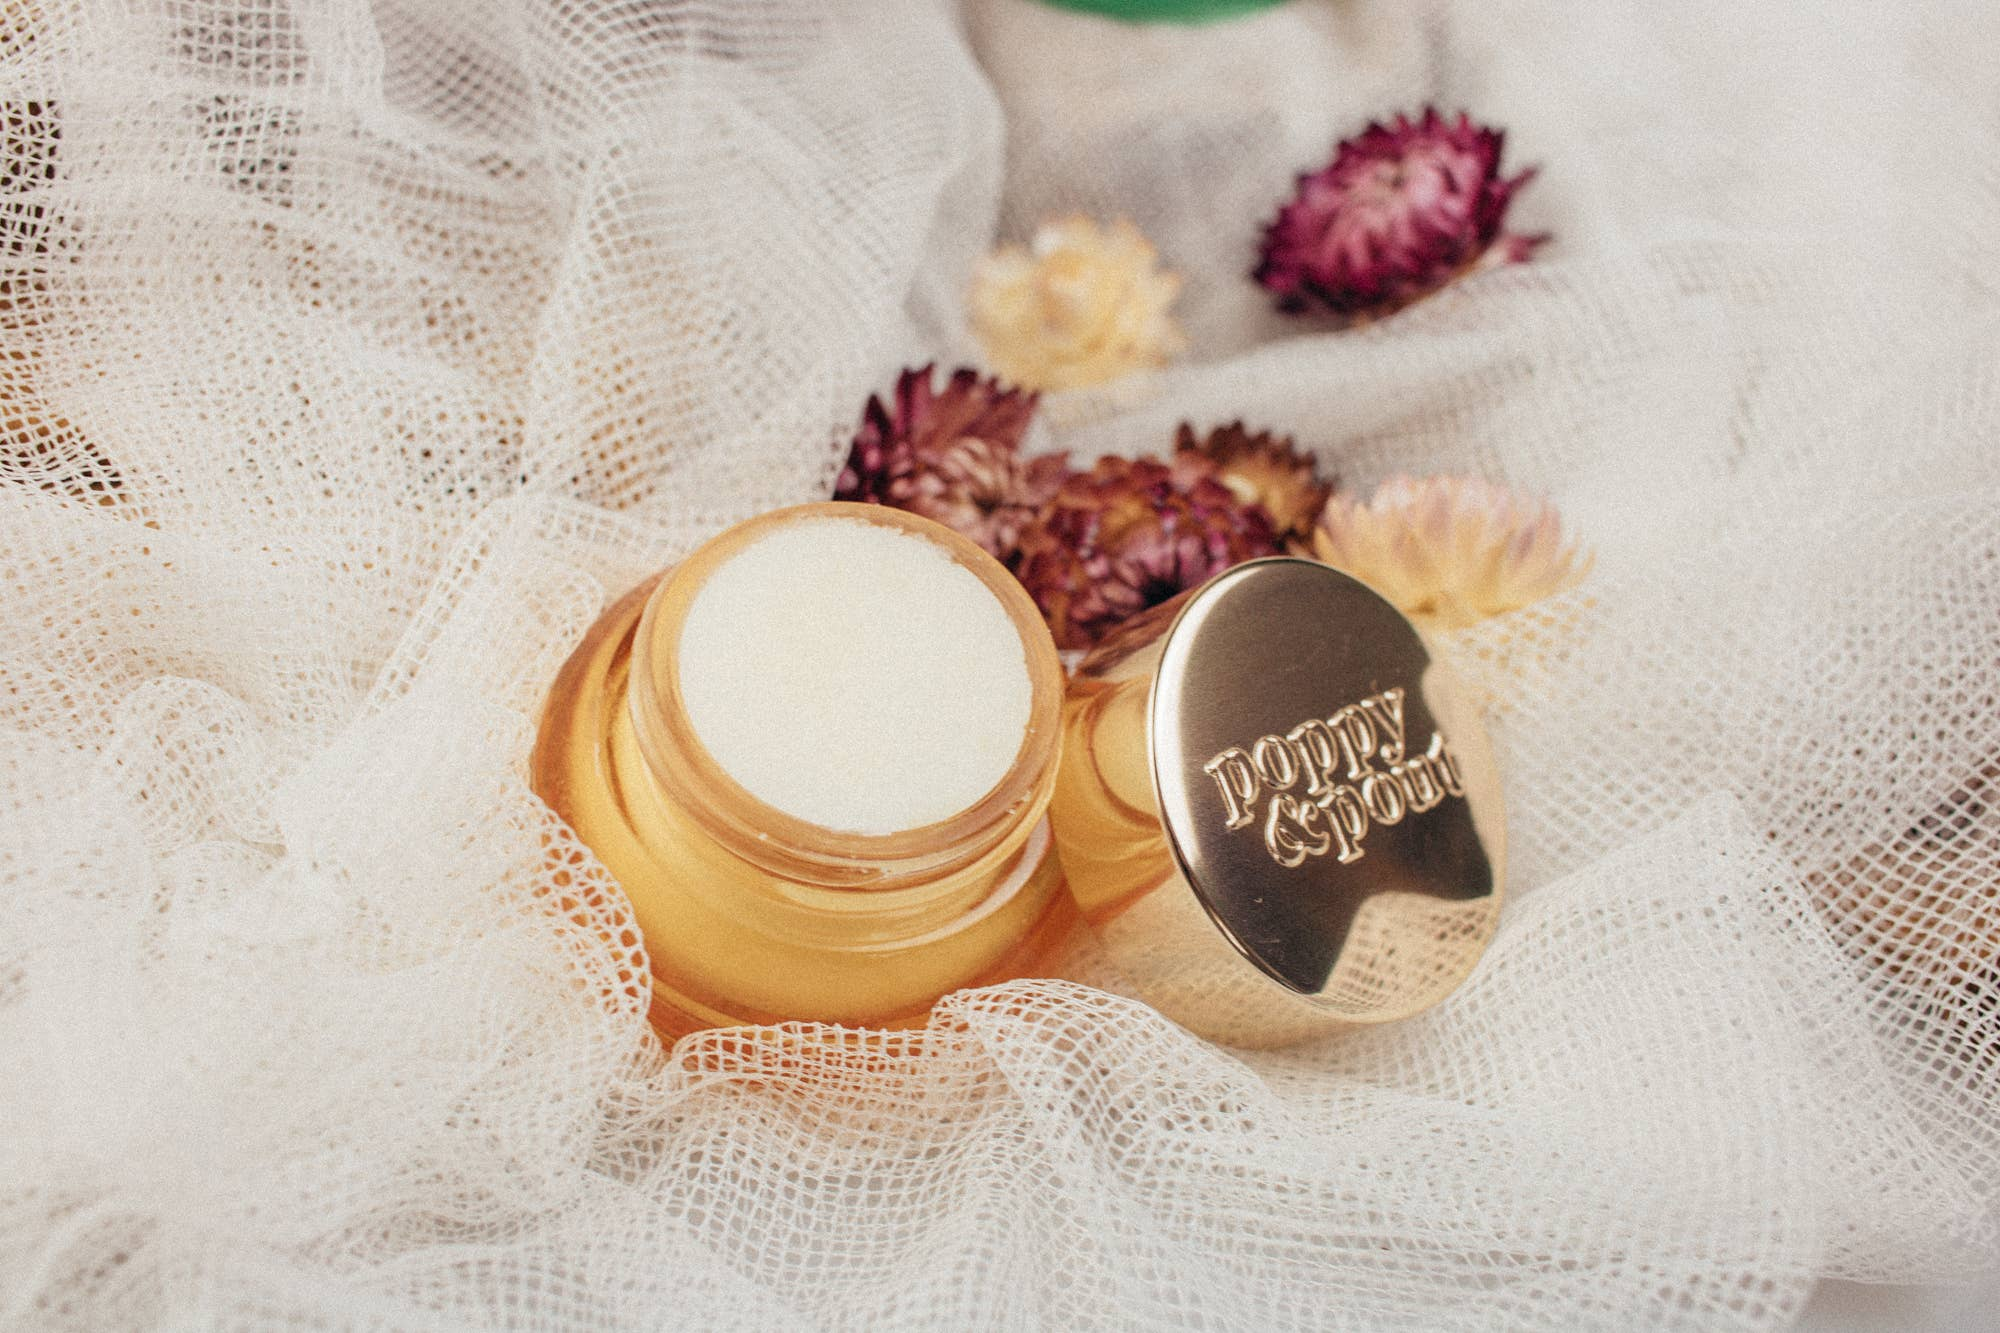 Wild Honey Lip Scrub by Poppy & Pout